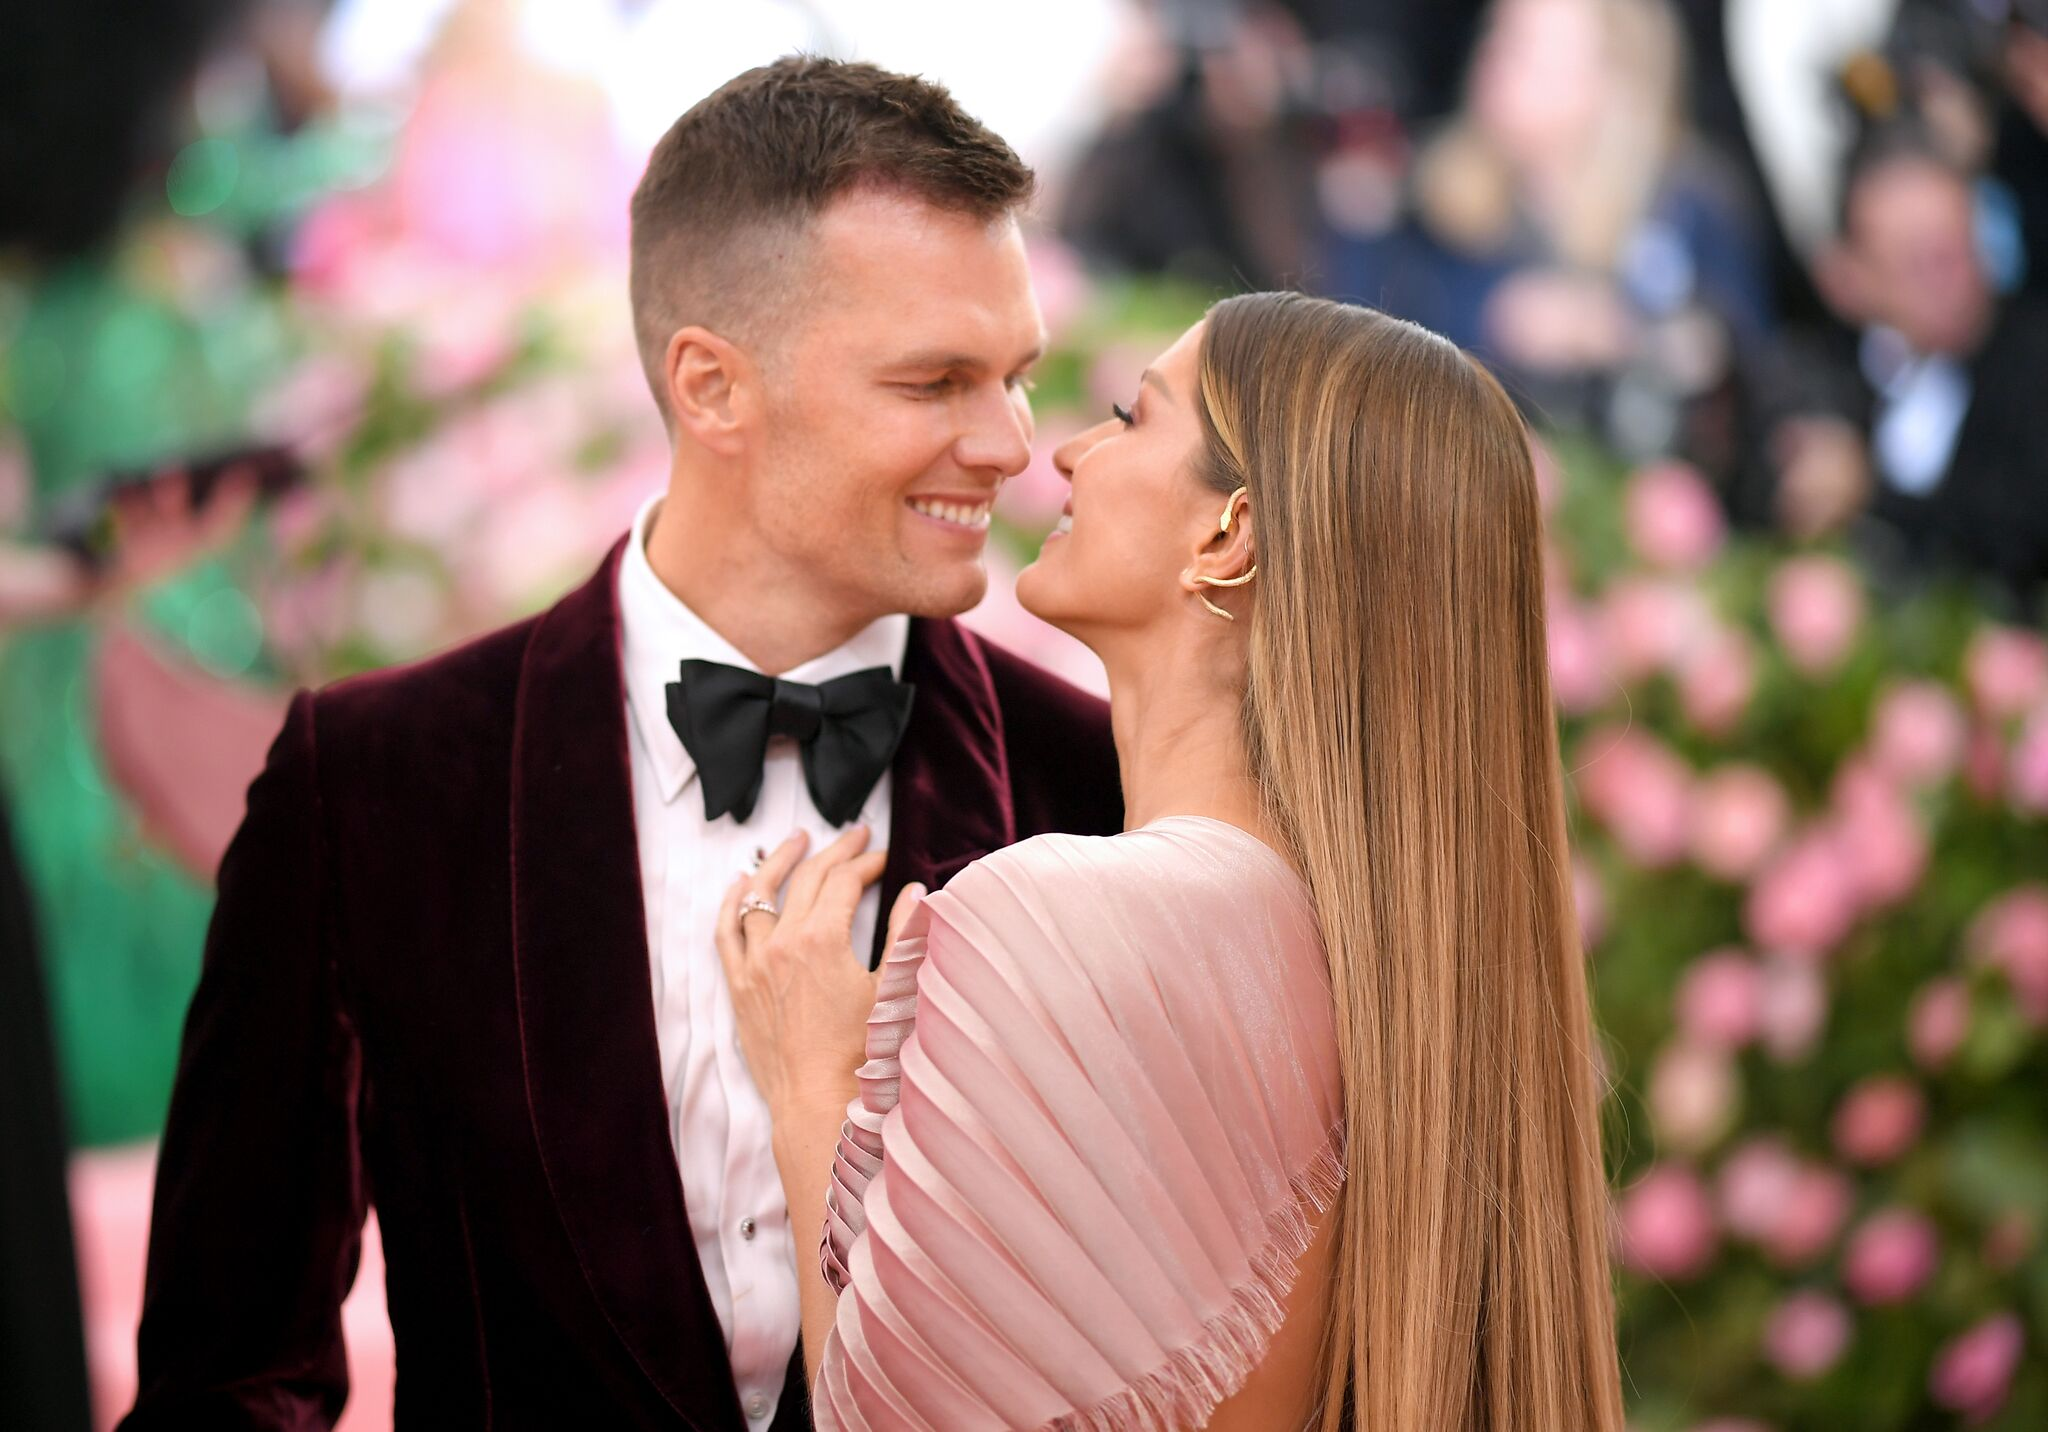 Tom Brady and Gisele Bundchen attend The 2019 Met Gala Celebrating Camp: Notes on Fashion at Metropolitan Museum of Art | Getty Images